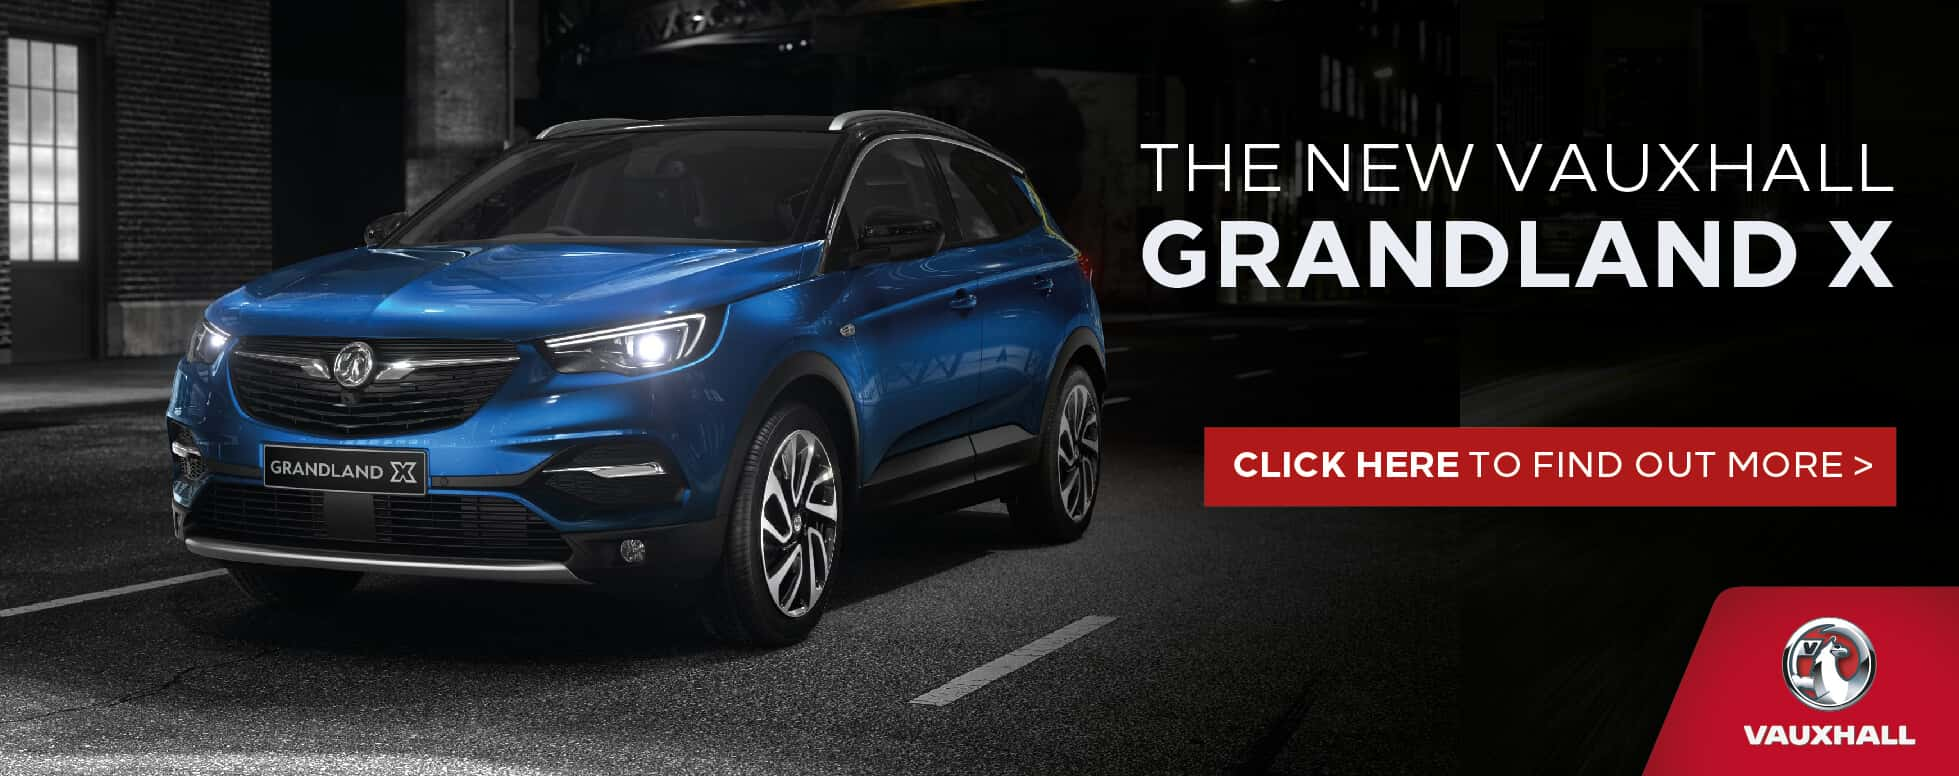 The New Vauxhall Grandland X